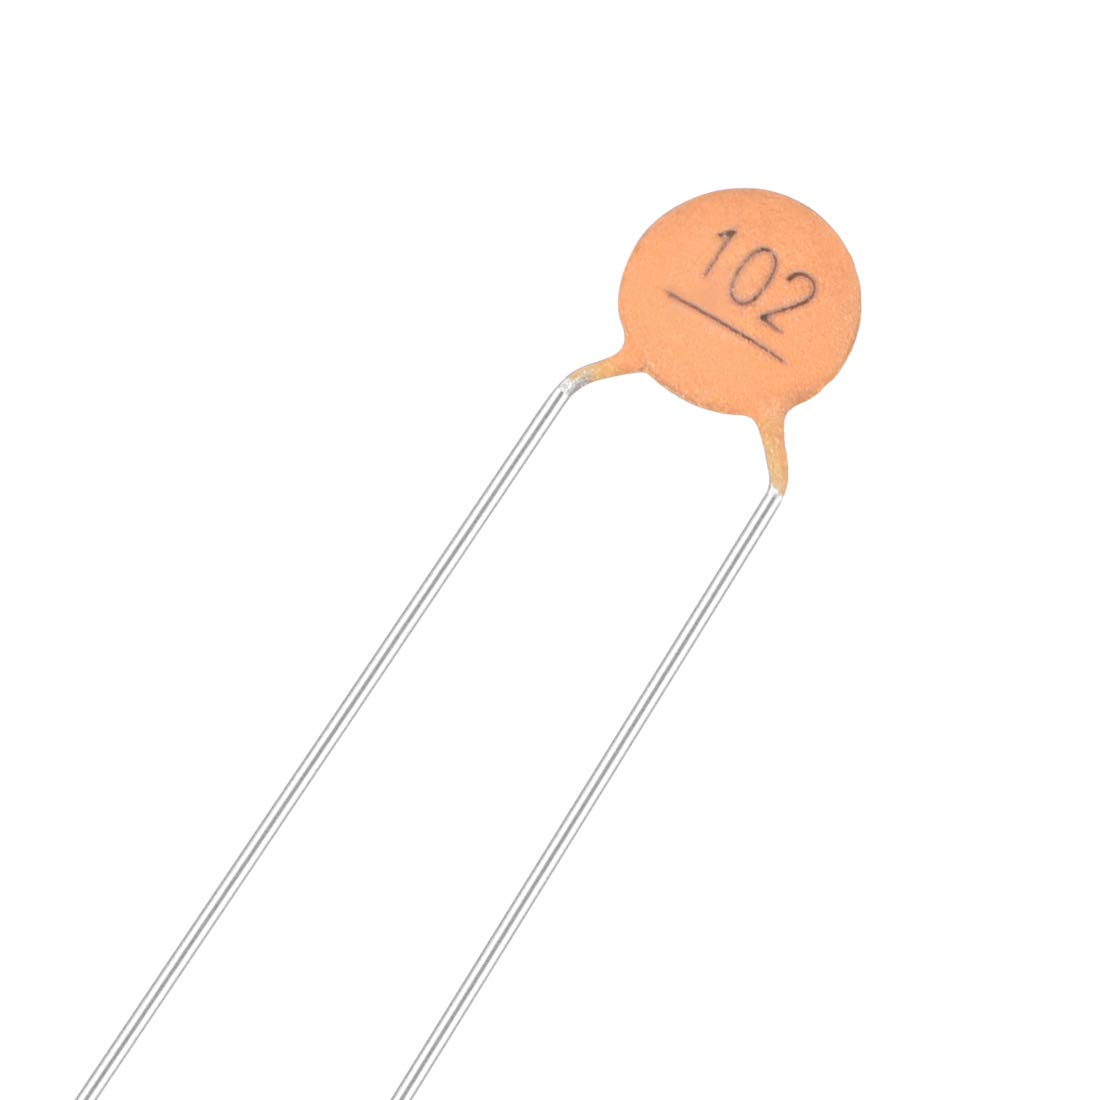 uxcell Ceramic Capacitor Kit 50V 1000PF Disc Capacitors for DIY Electronic Circuit Pack of 10